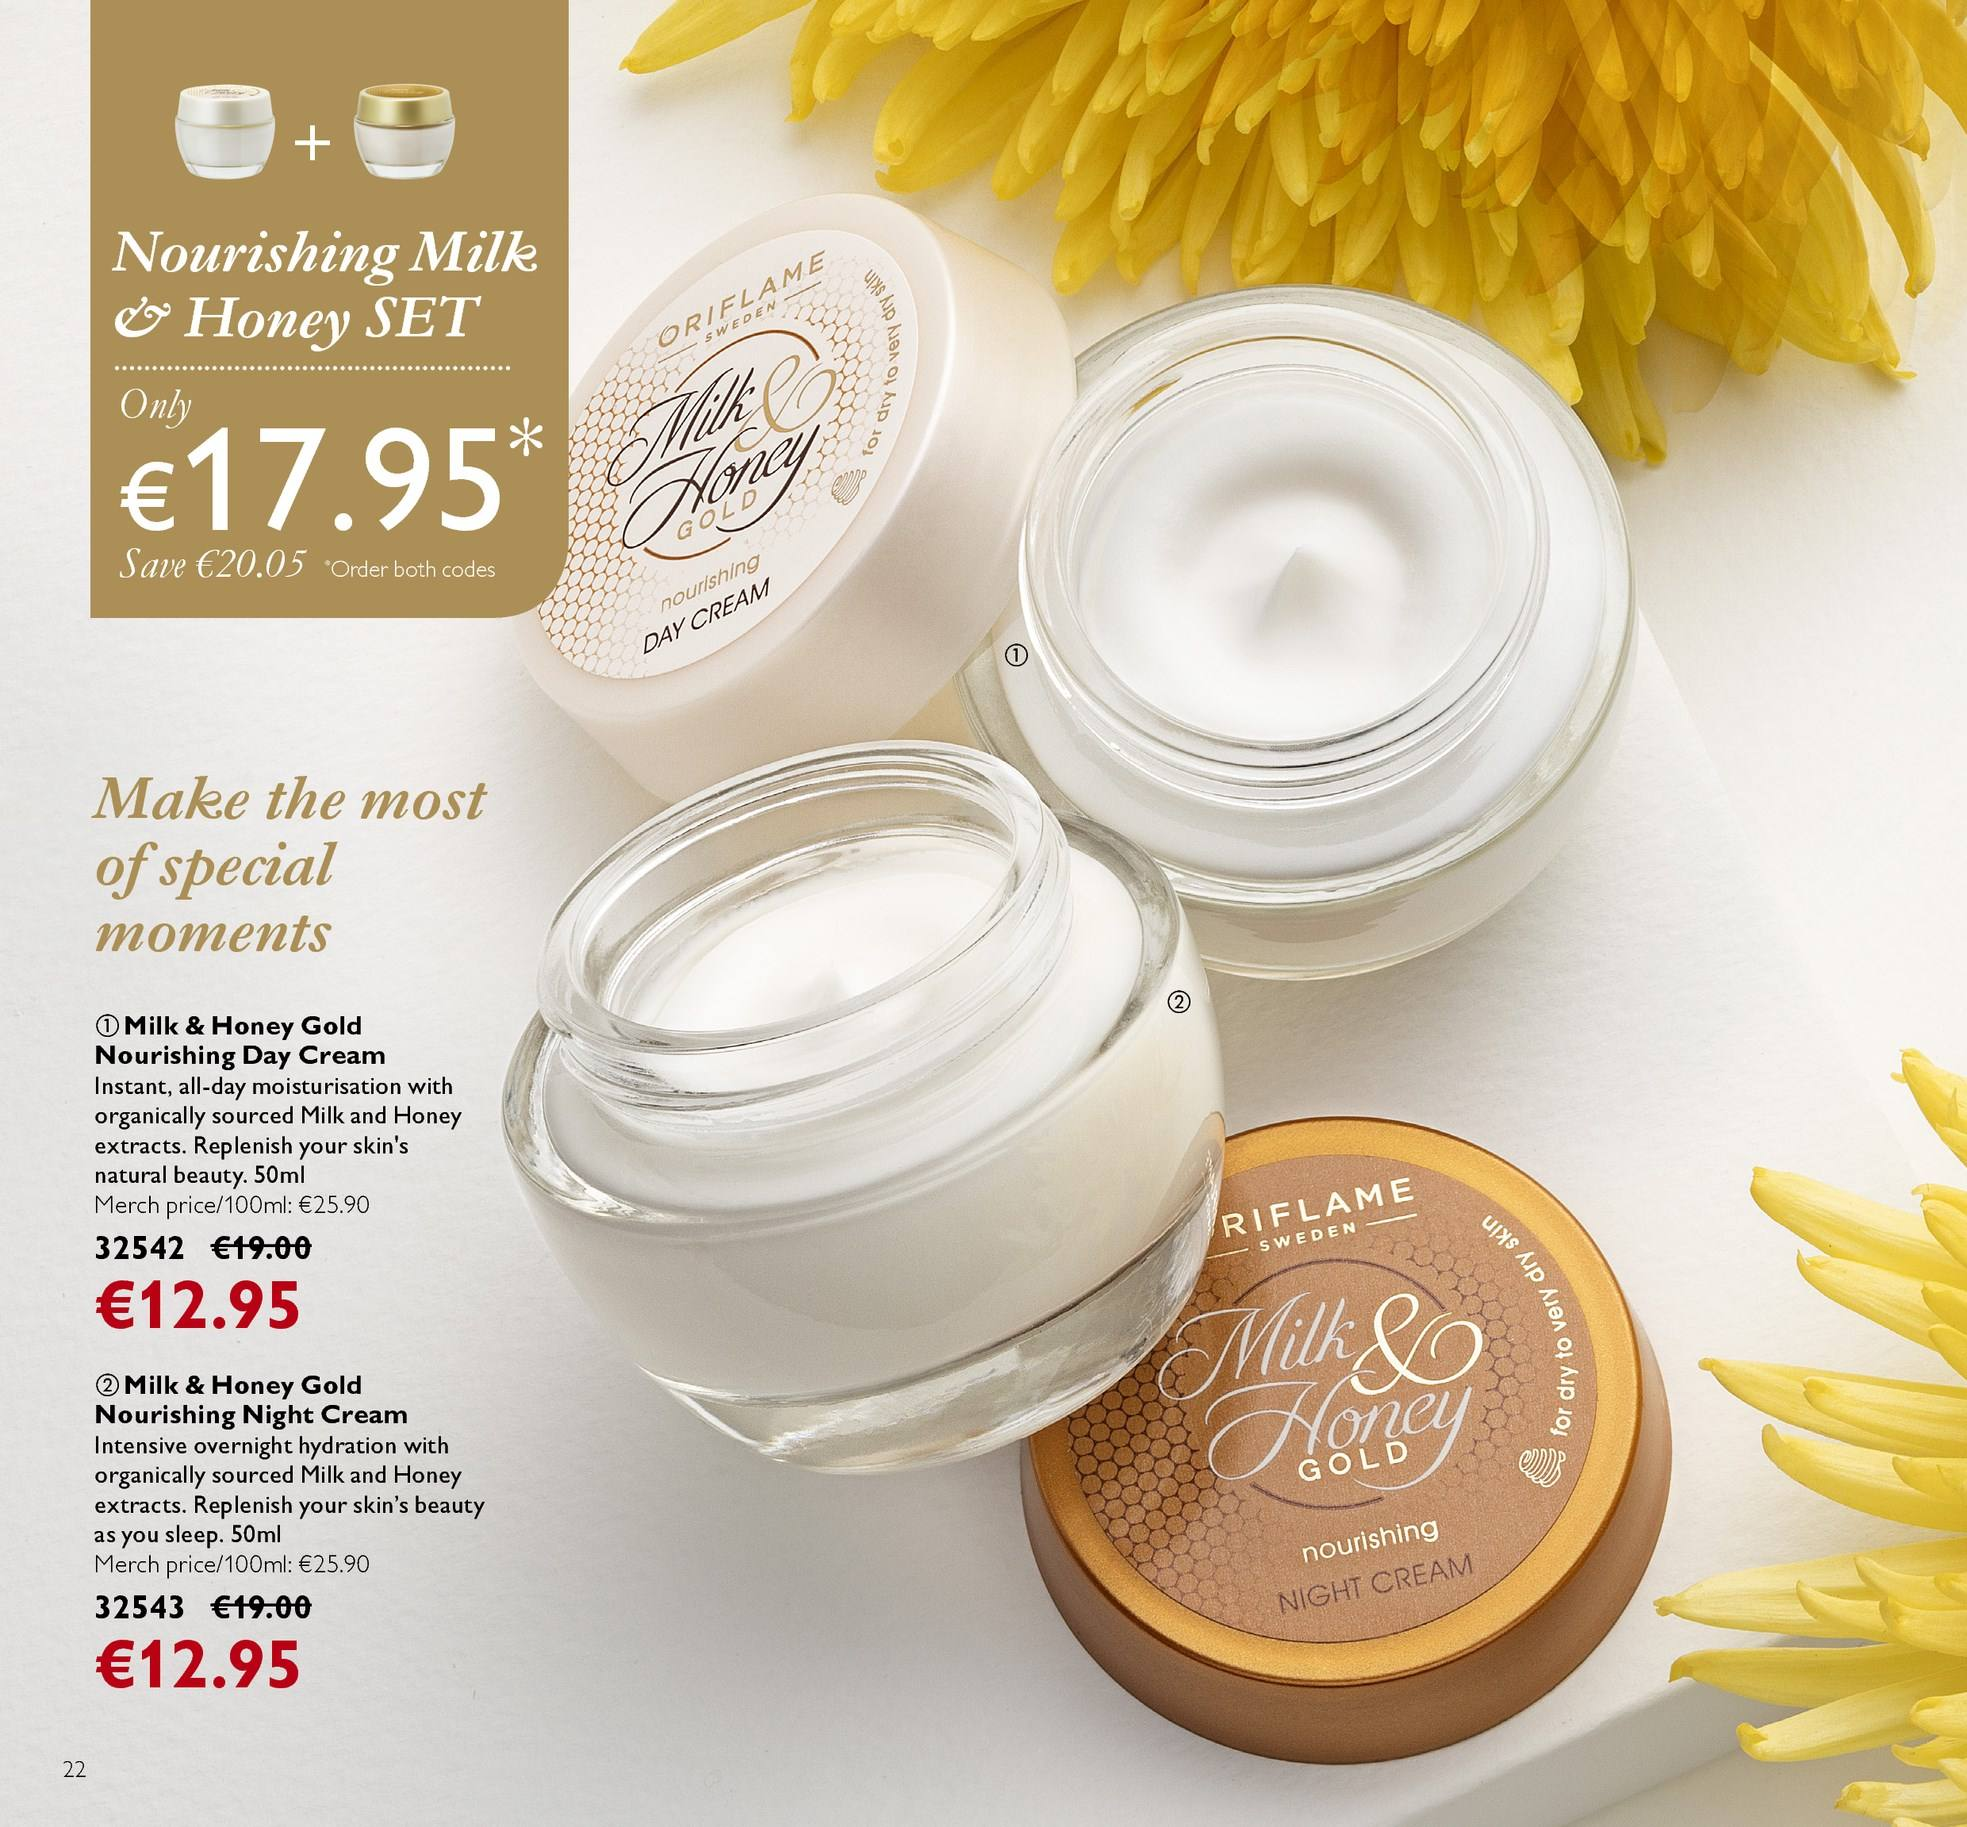 Oriflame offer  - 13.4.2018 - 3.5.2018 - Sales products - day cream, night cream. Page 22.